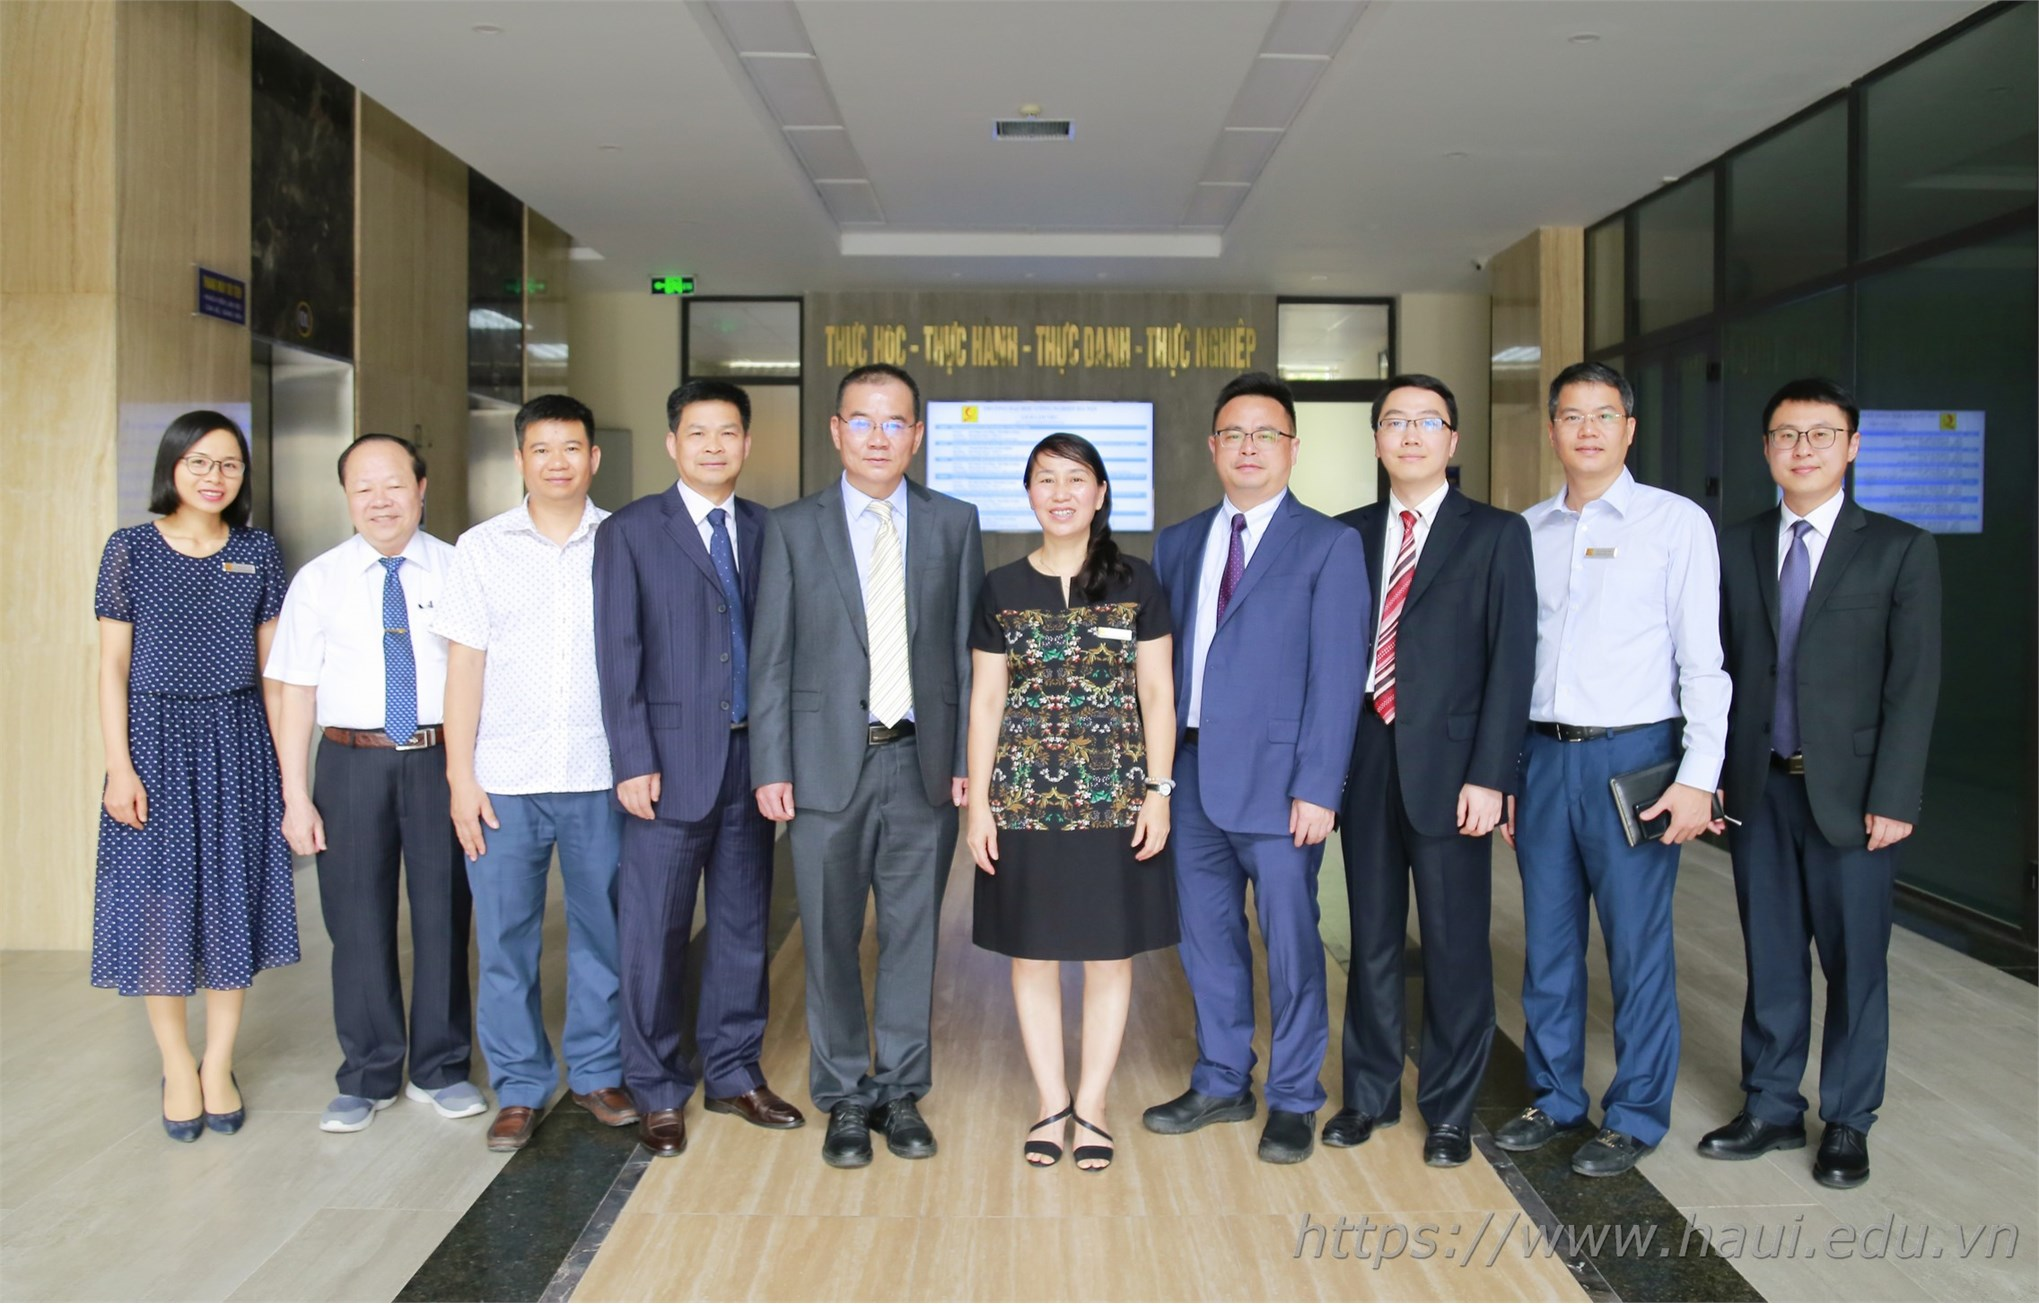 Guangxi University of Science and Technology, China paid a working visit to Hanoi University of Industry